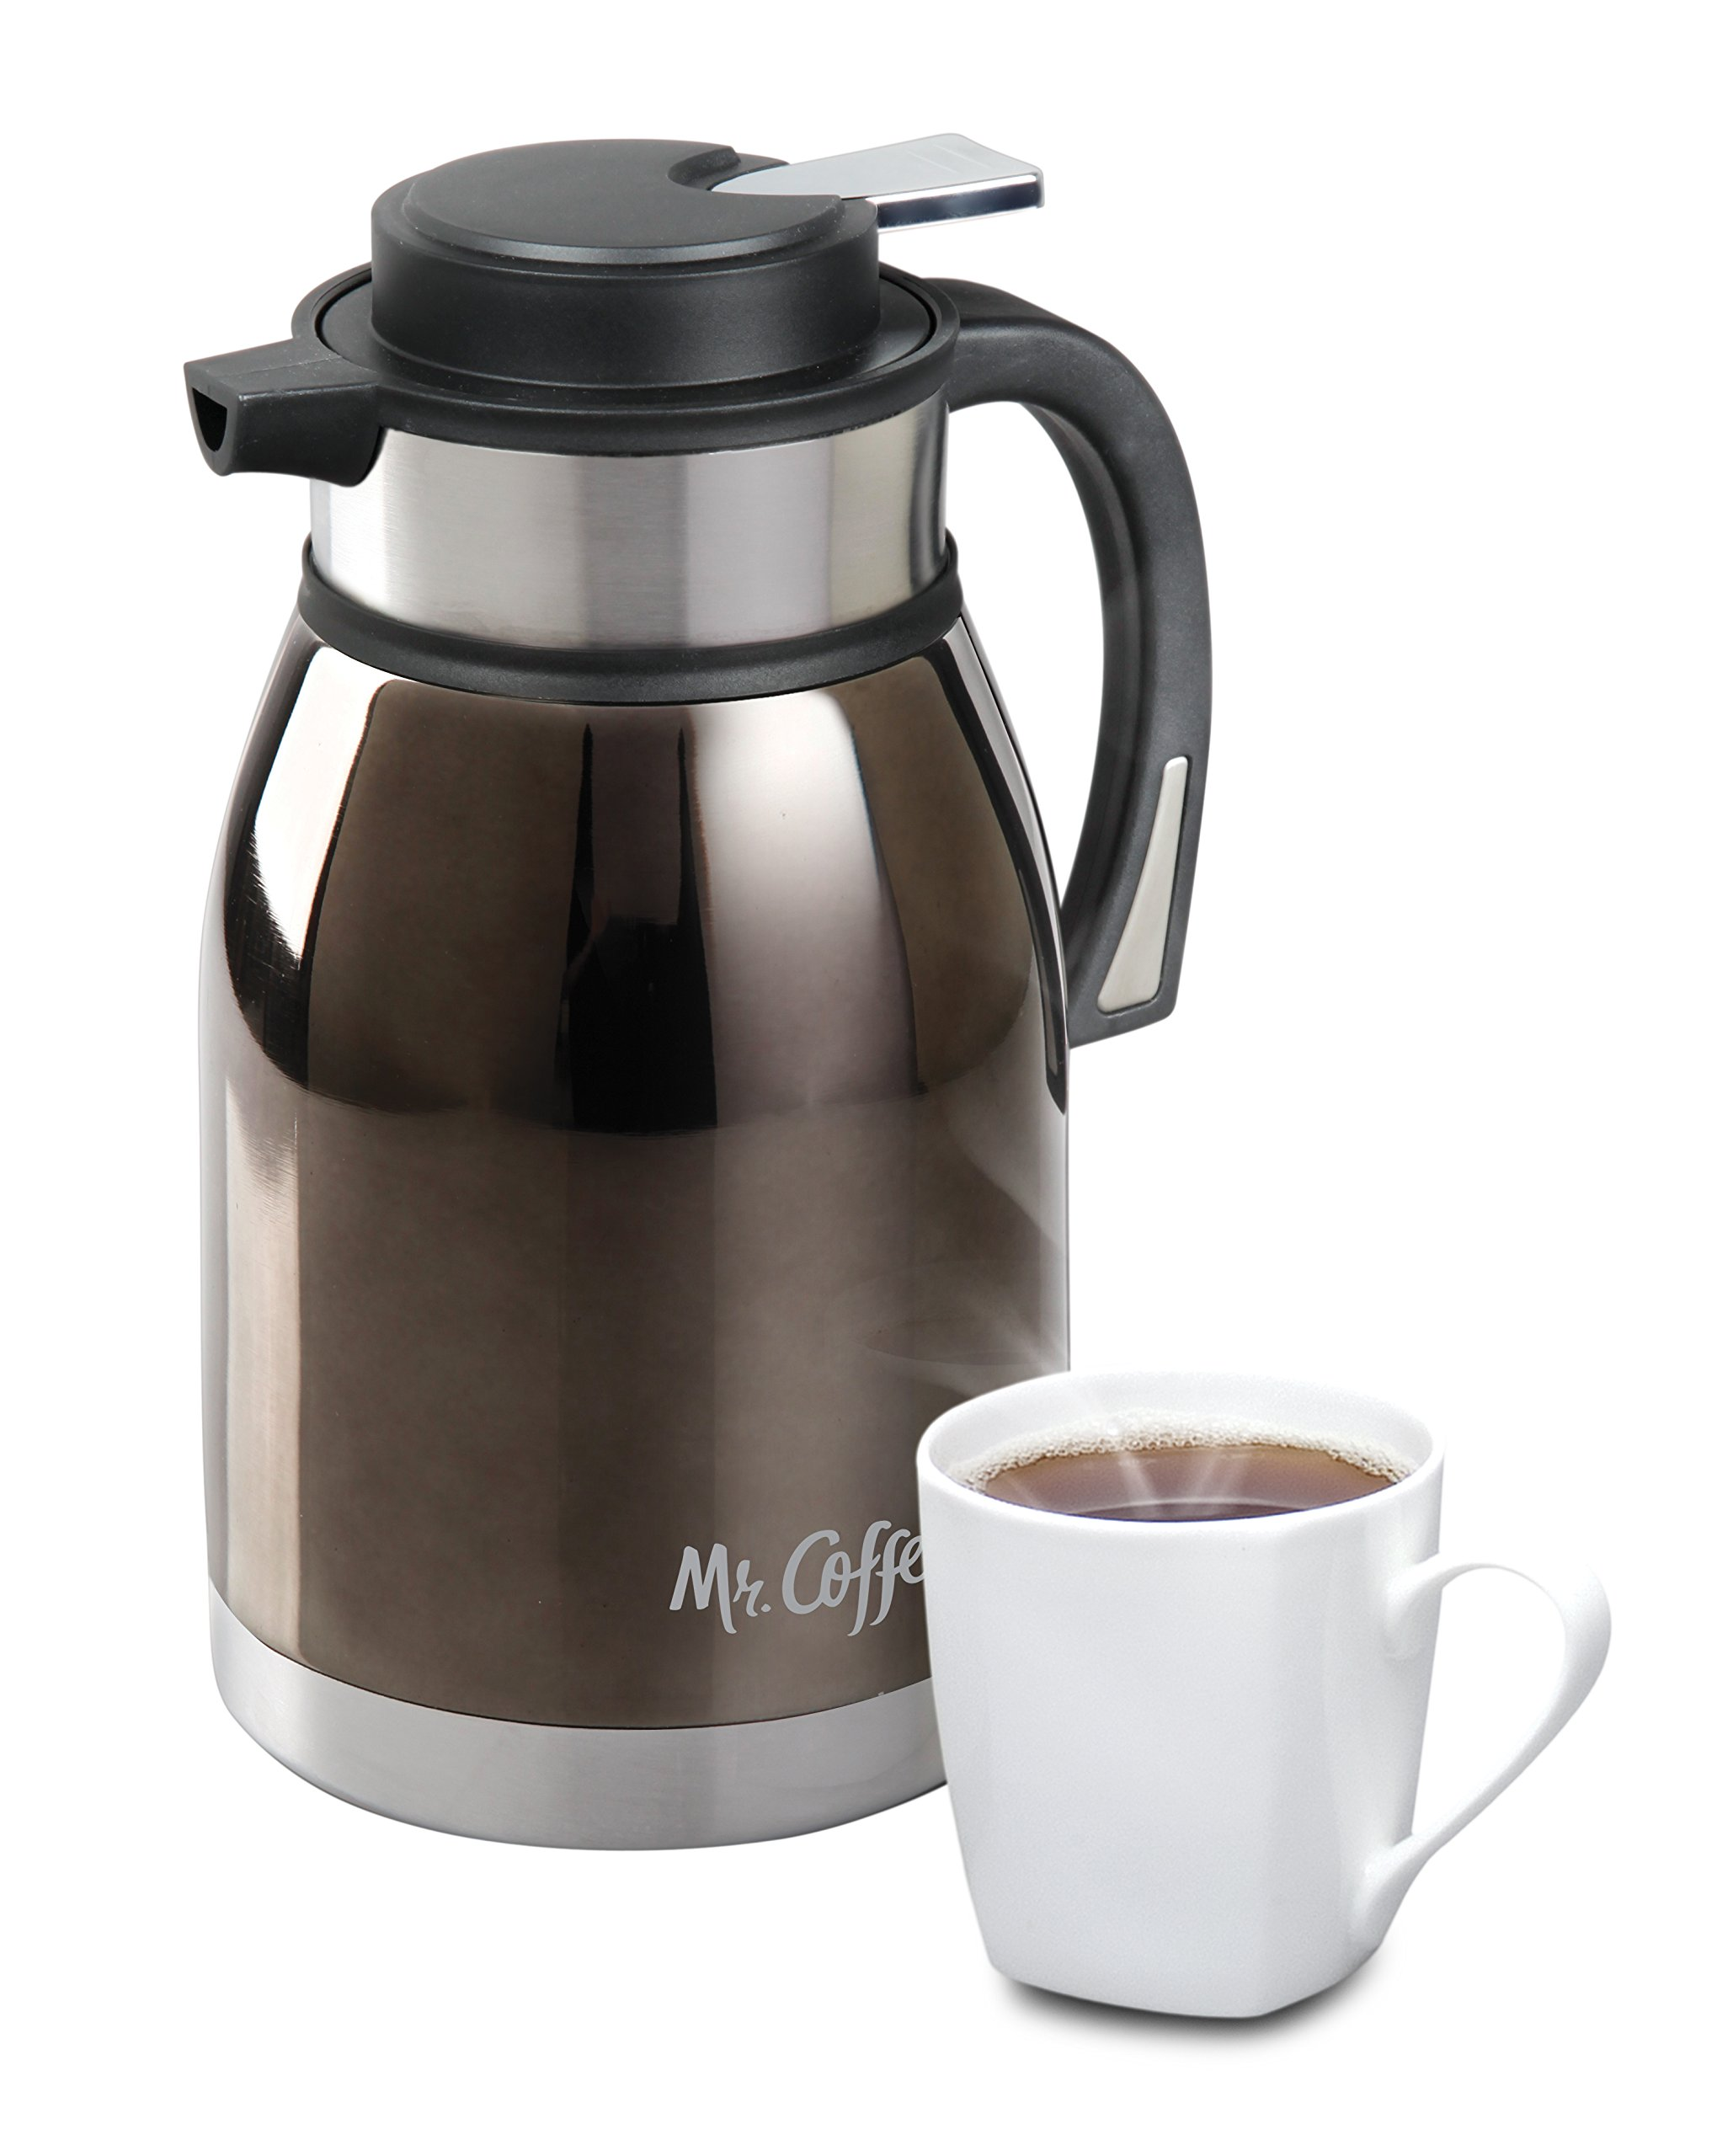 Mr Coffee 108160.01 Colwyn Double Wall Coffee Pot, 2 quart, Charcoal by Mr. Coffee